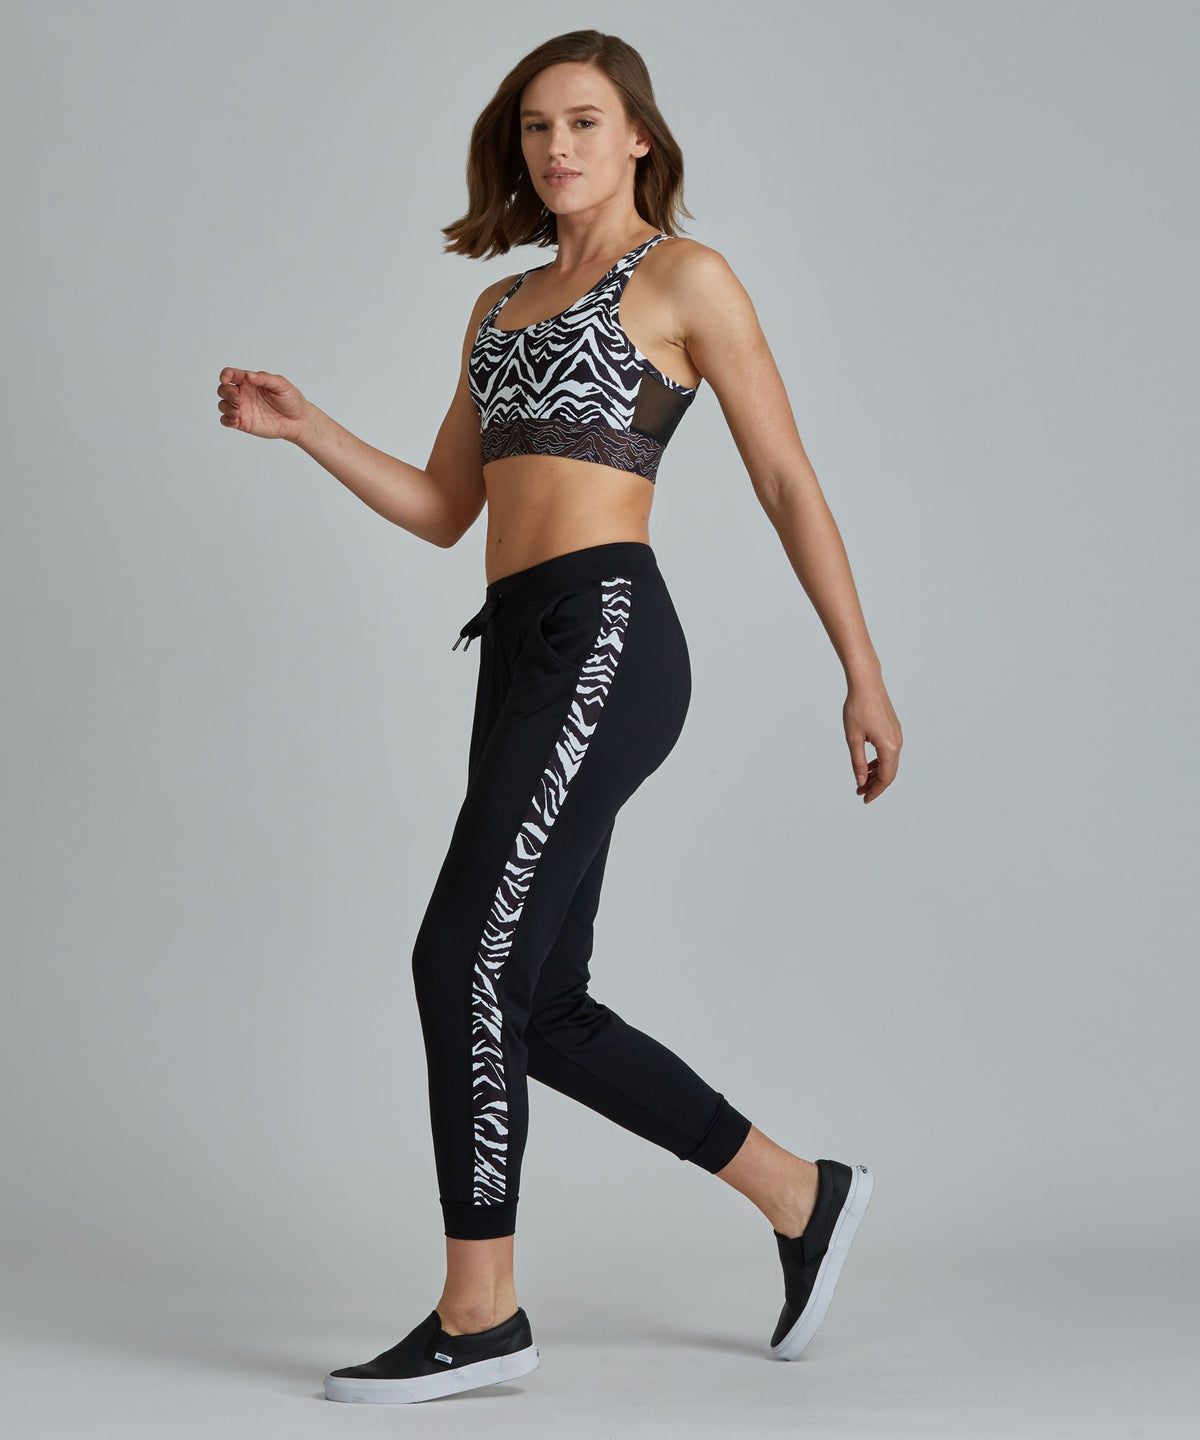 Urban Track Pant - Black/ Zebra Black and Zebra Urban Track Pant - Women's Activewear Pant by PRISMSPORT